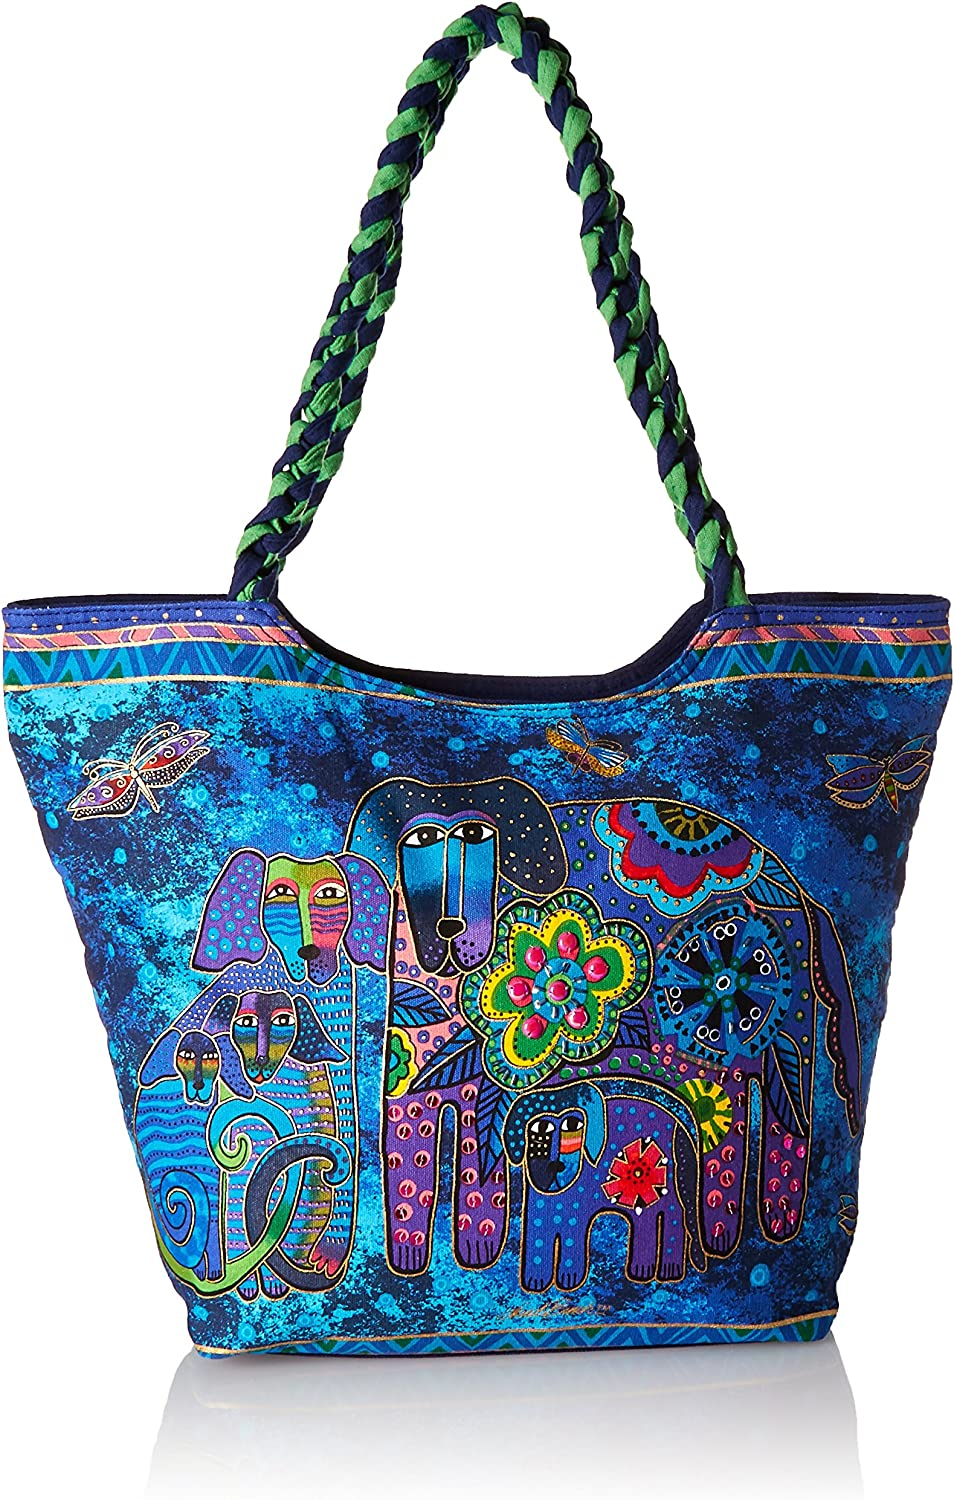 Laurel Burch Scoop Tote Zipper Top, 19-Inch by 5-Inch by 14-Inch, Canine Family